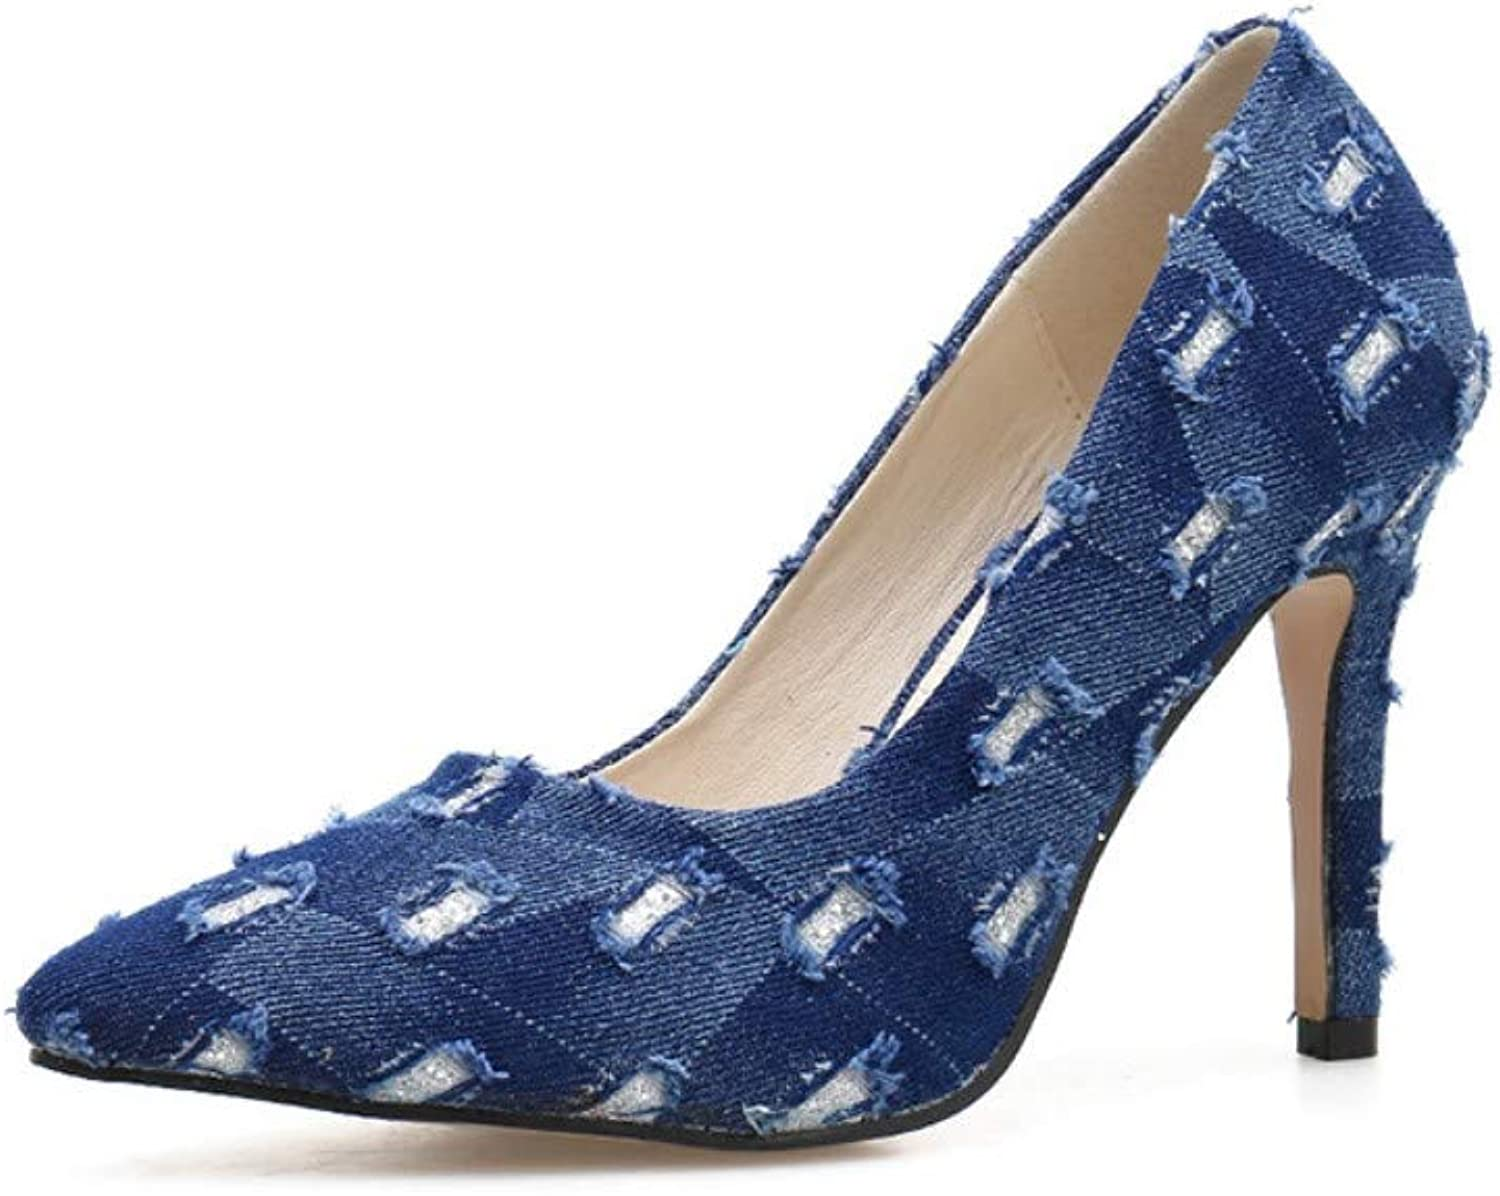 JQfashion Women's High-Heeled shoes Denim Face Pointed Thin-Heeled Single shoes